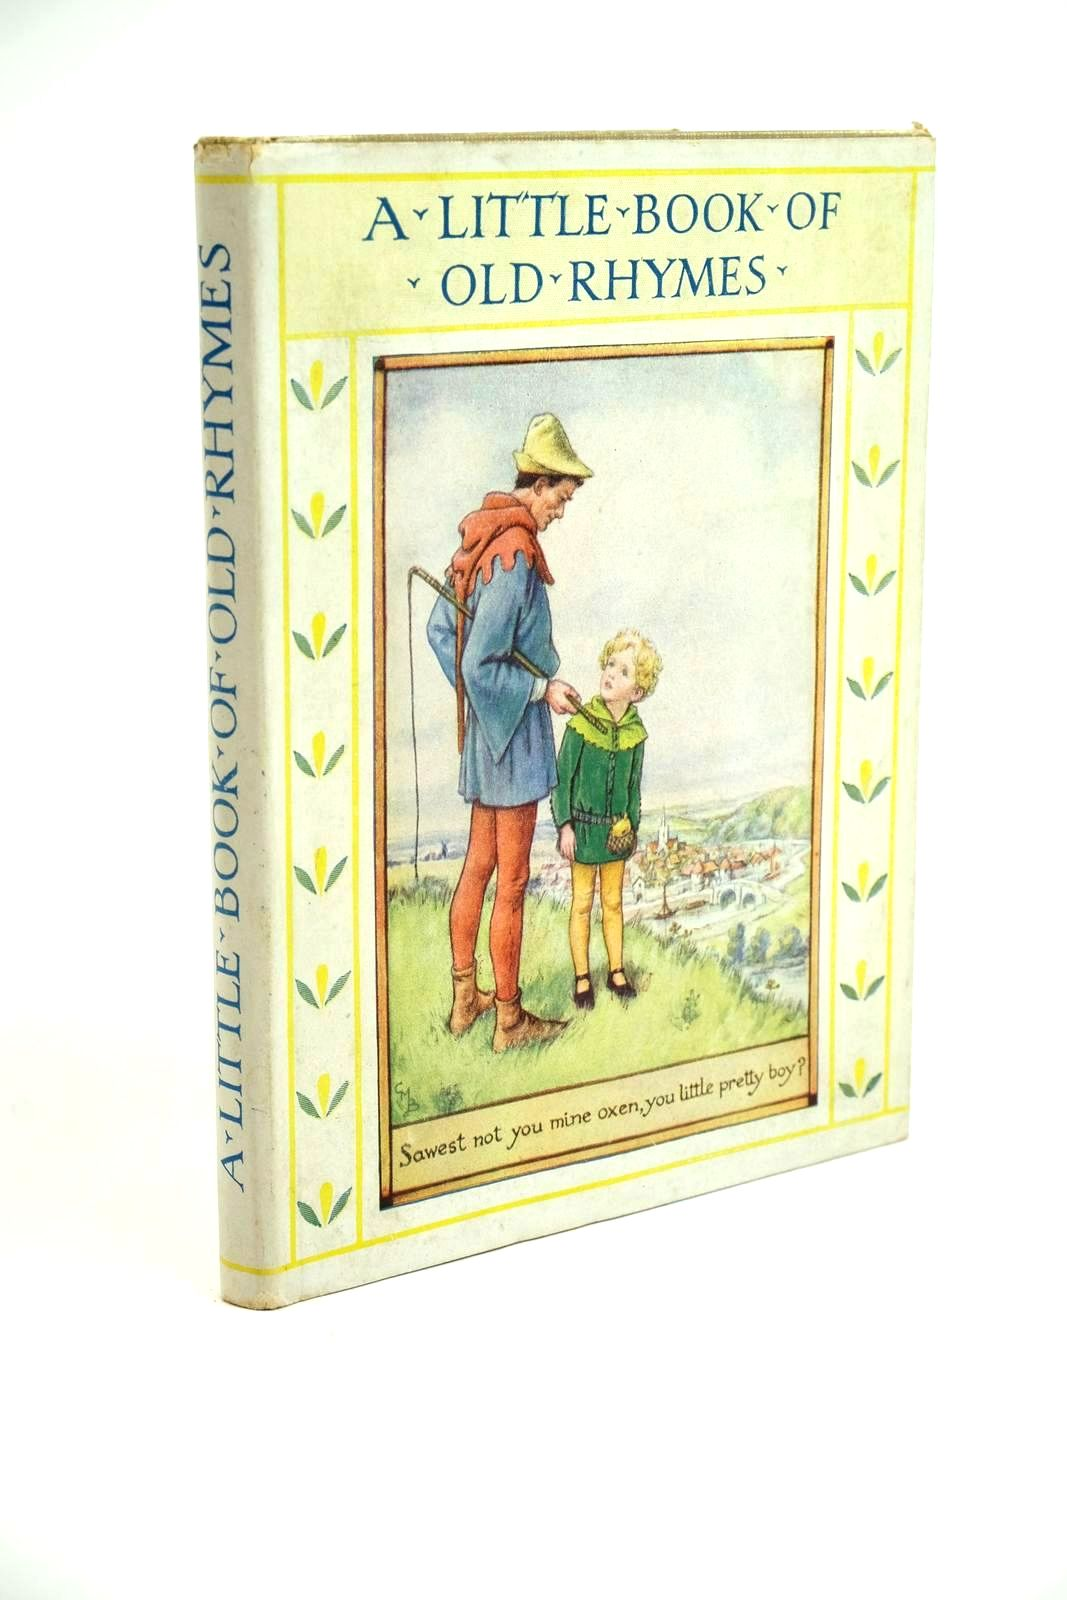 Photo of A LITTLE BOOK OF OLD RHYMES written by Barker, Cicely Mary illustrated by Barker, Cicely Mary published by Blackie & Son Ltd. (STOCK CODE: 1321682)  for sale by Stella & Rose's Books